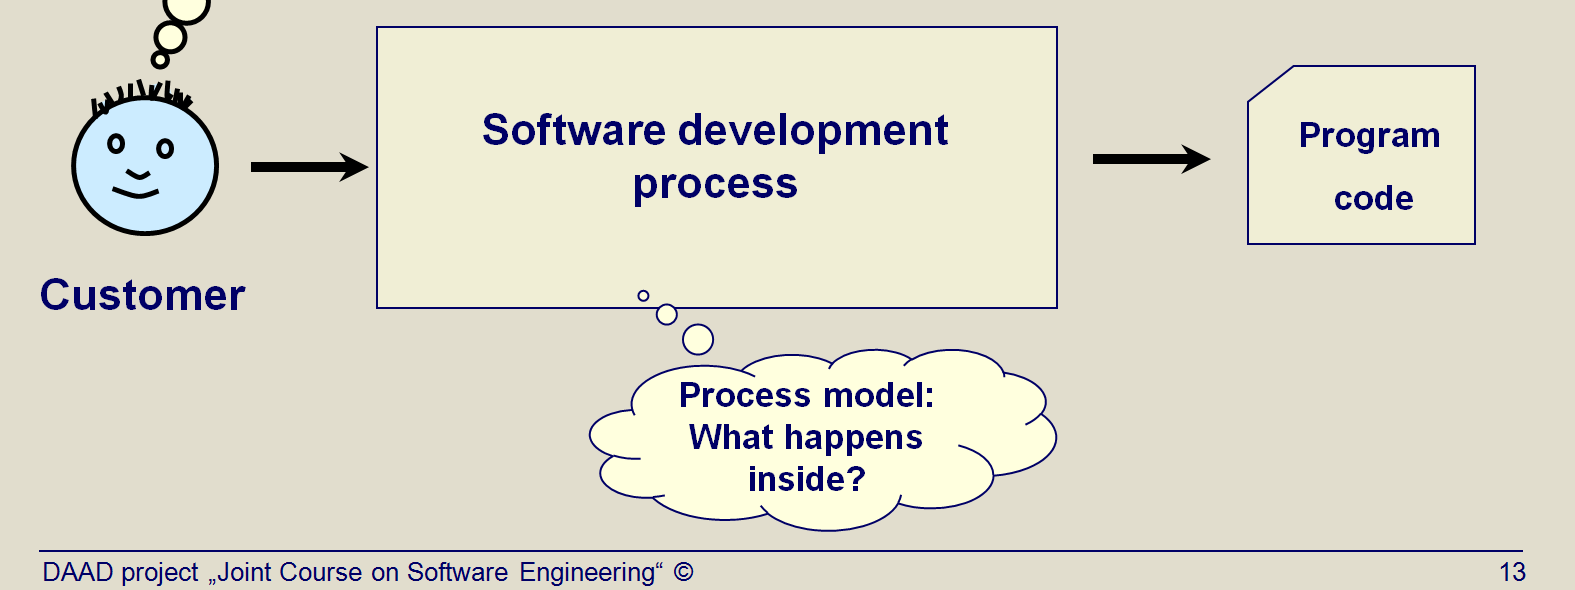 Title: Software development process until 1970: considered as a black box (Topic03 Slide 13). What is the essential problem to be investigated in this topic?